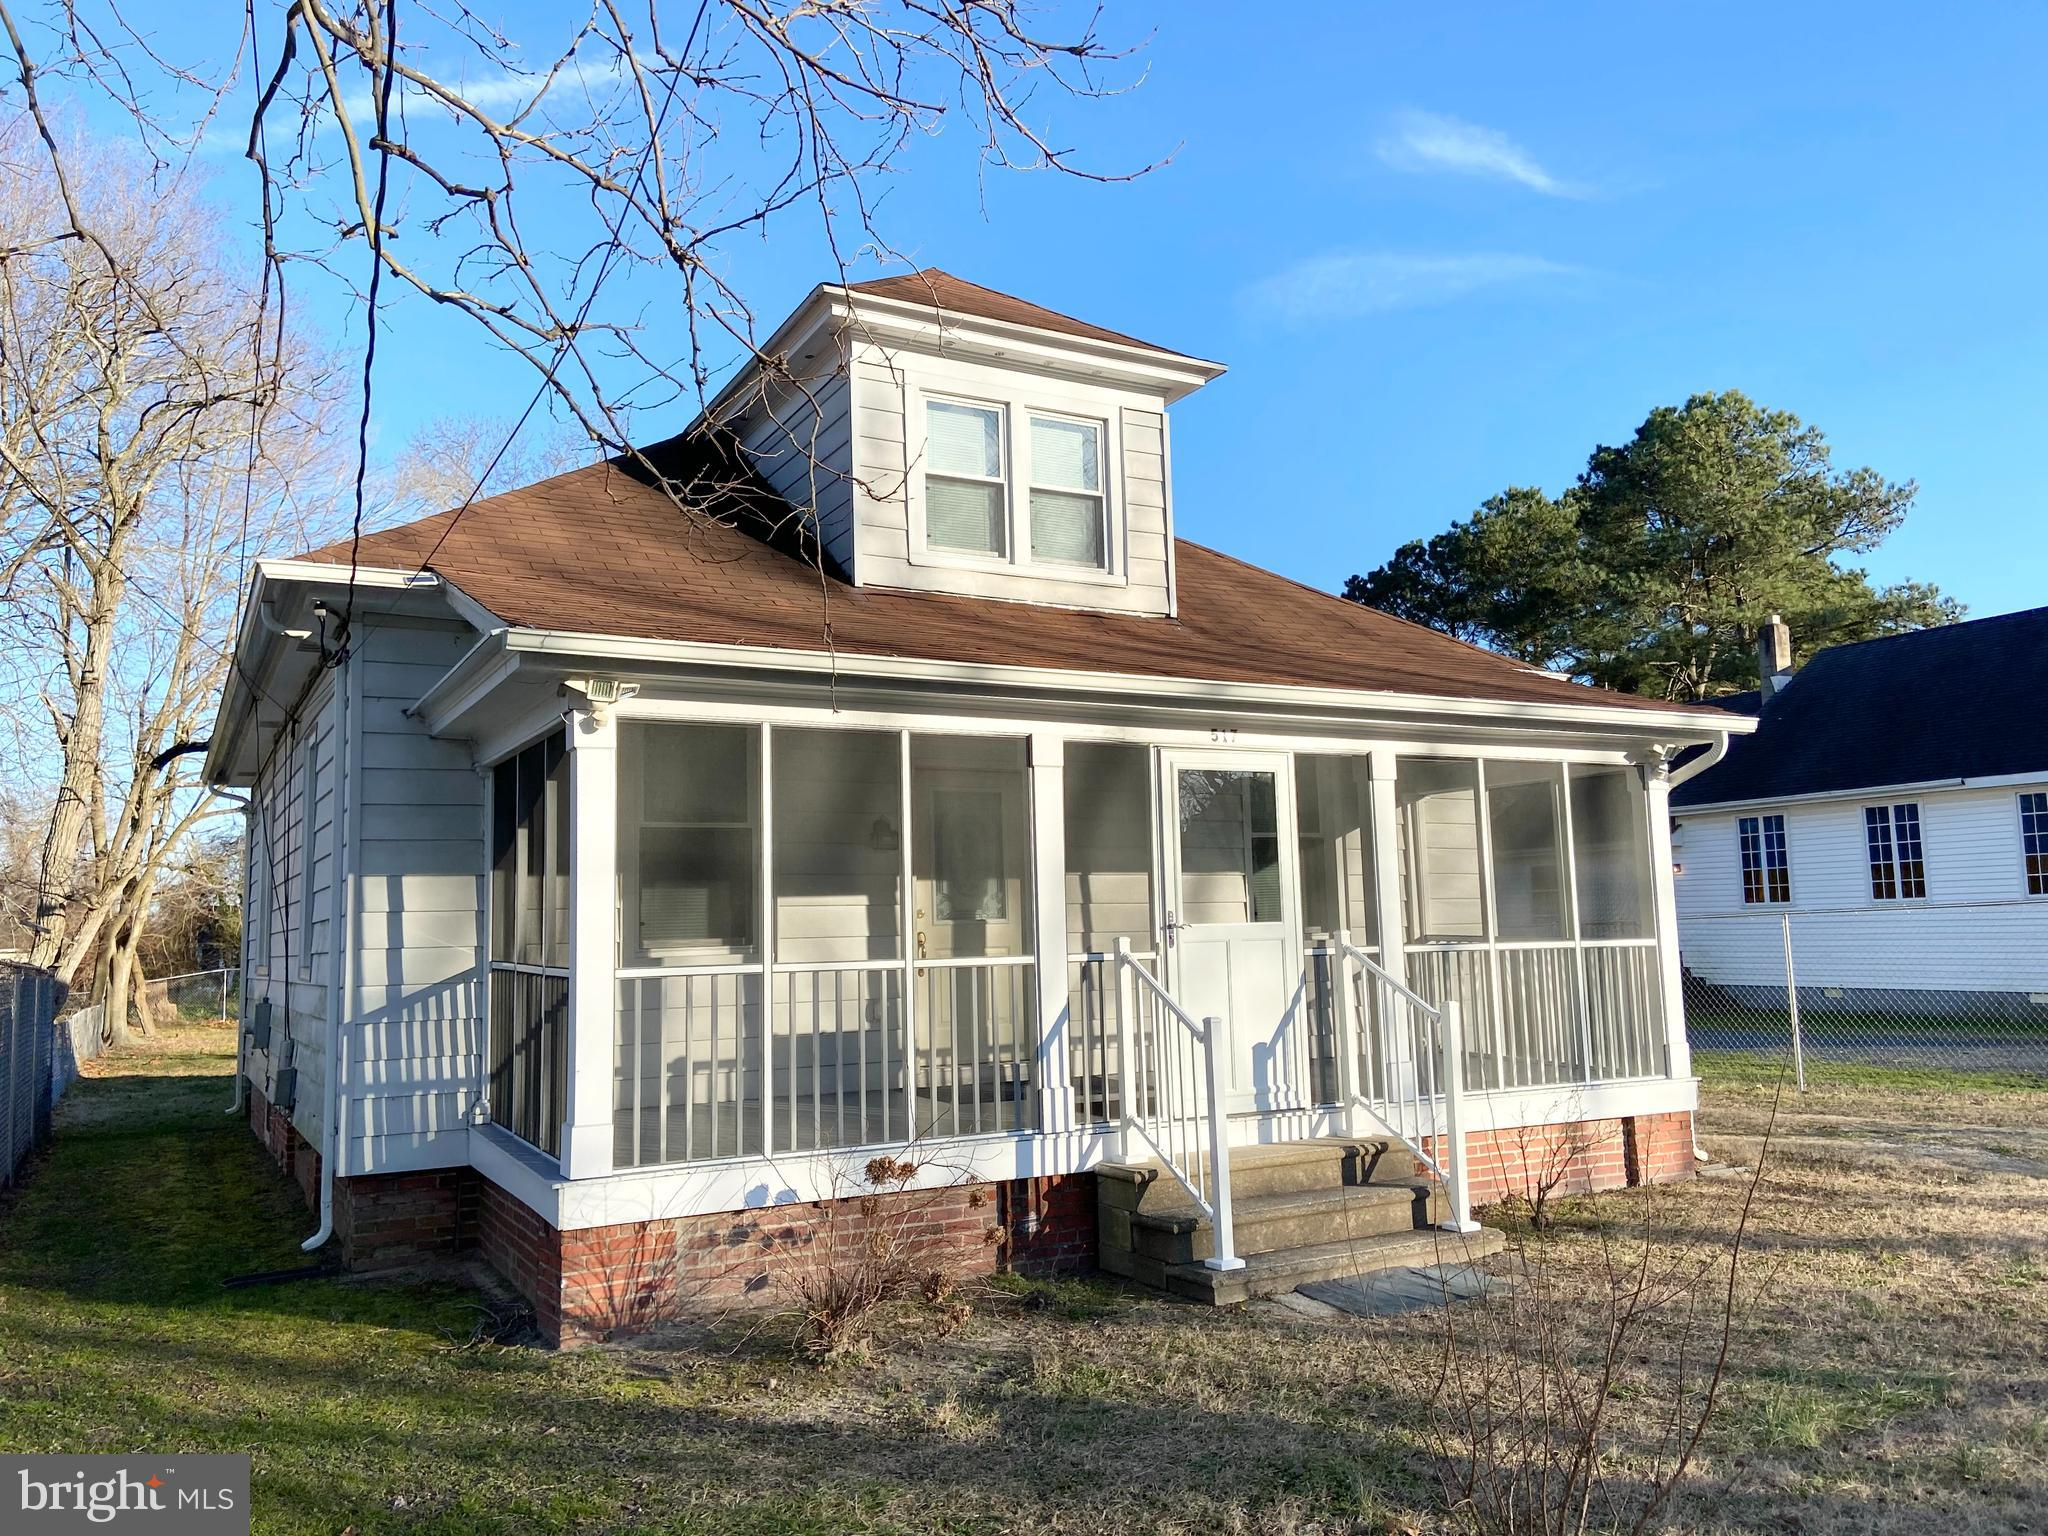 Very well maintained Cape Cod home. Original hardwood floor. All windows have been replaced. Screene